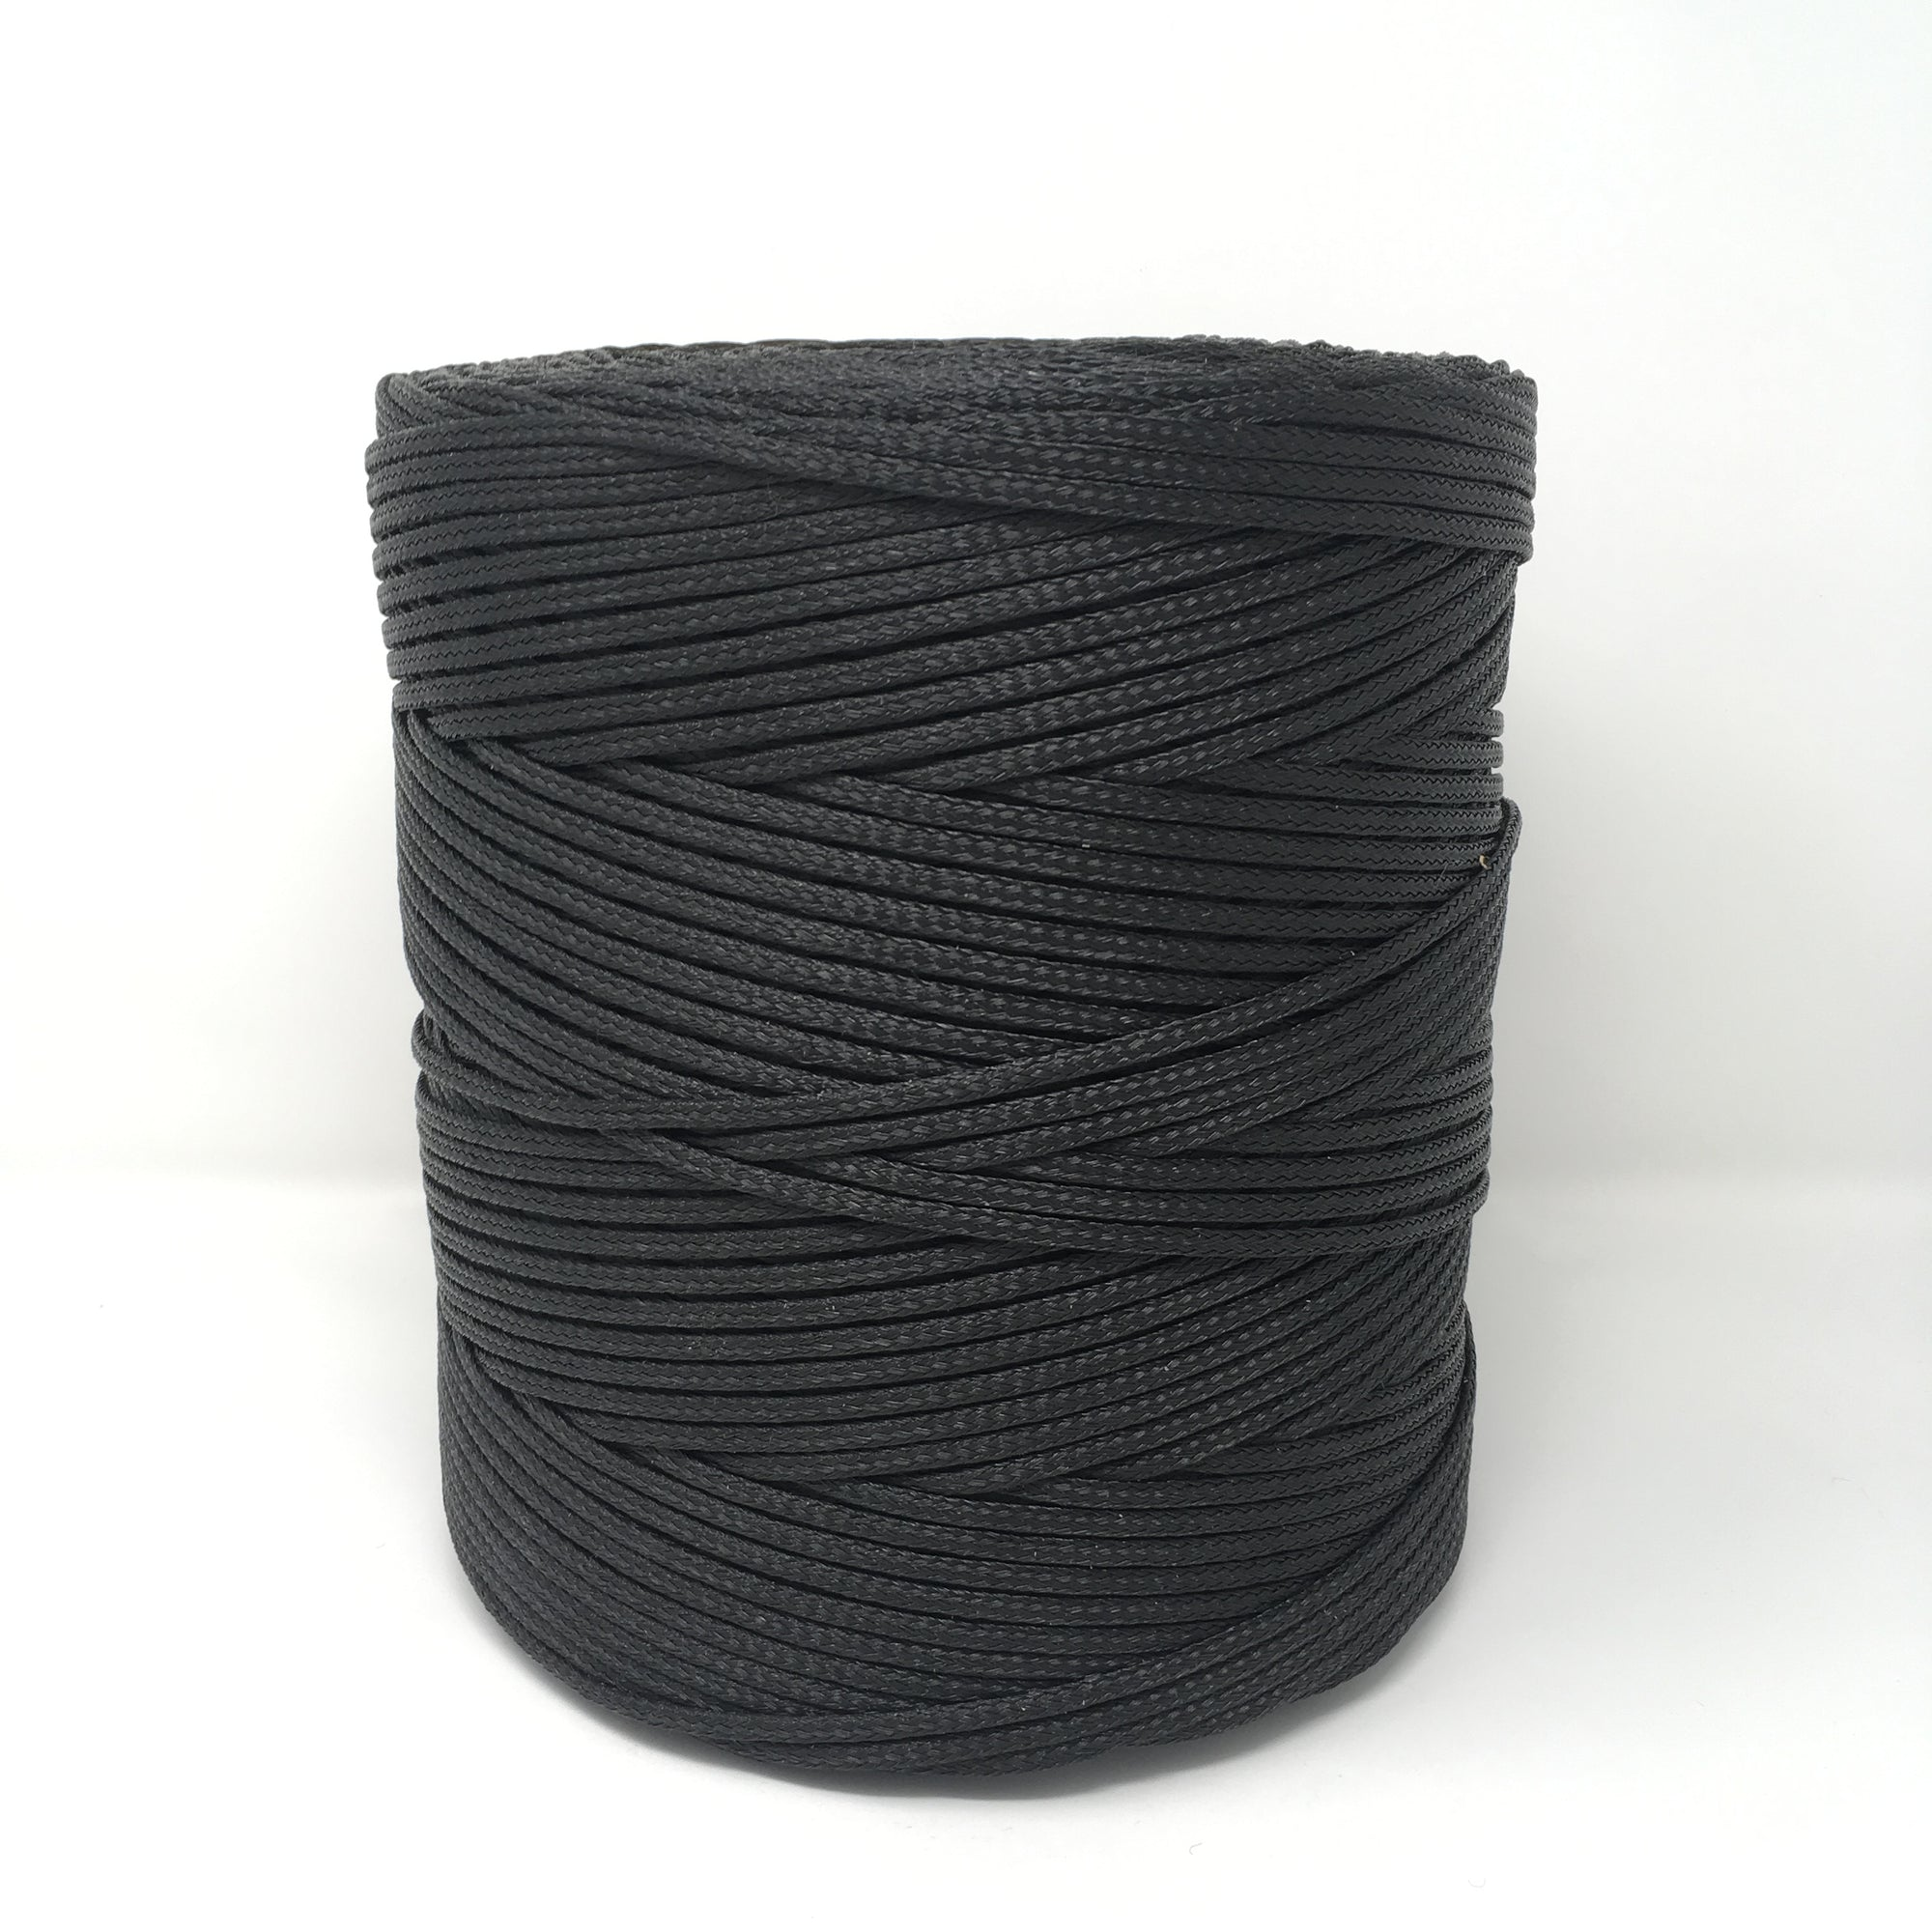 Black braided polypropylene tensioning rope twine for supporting pond safety netting